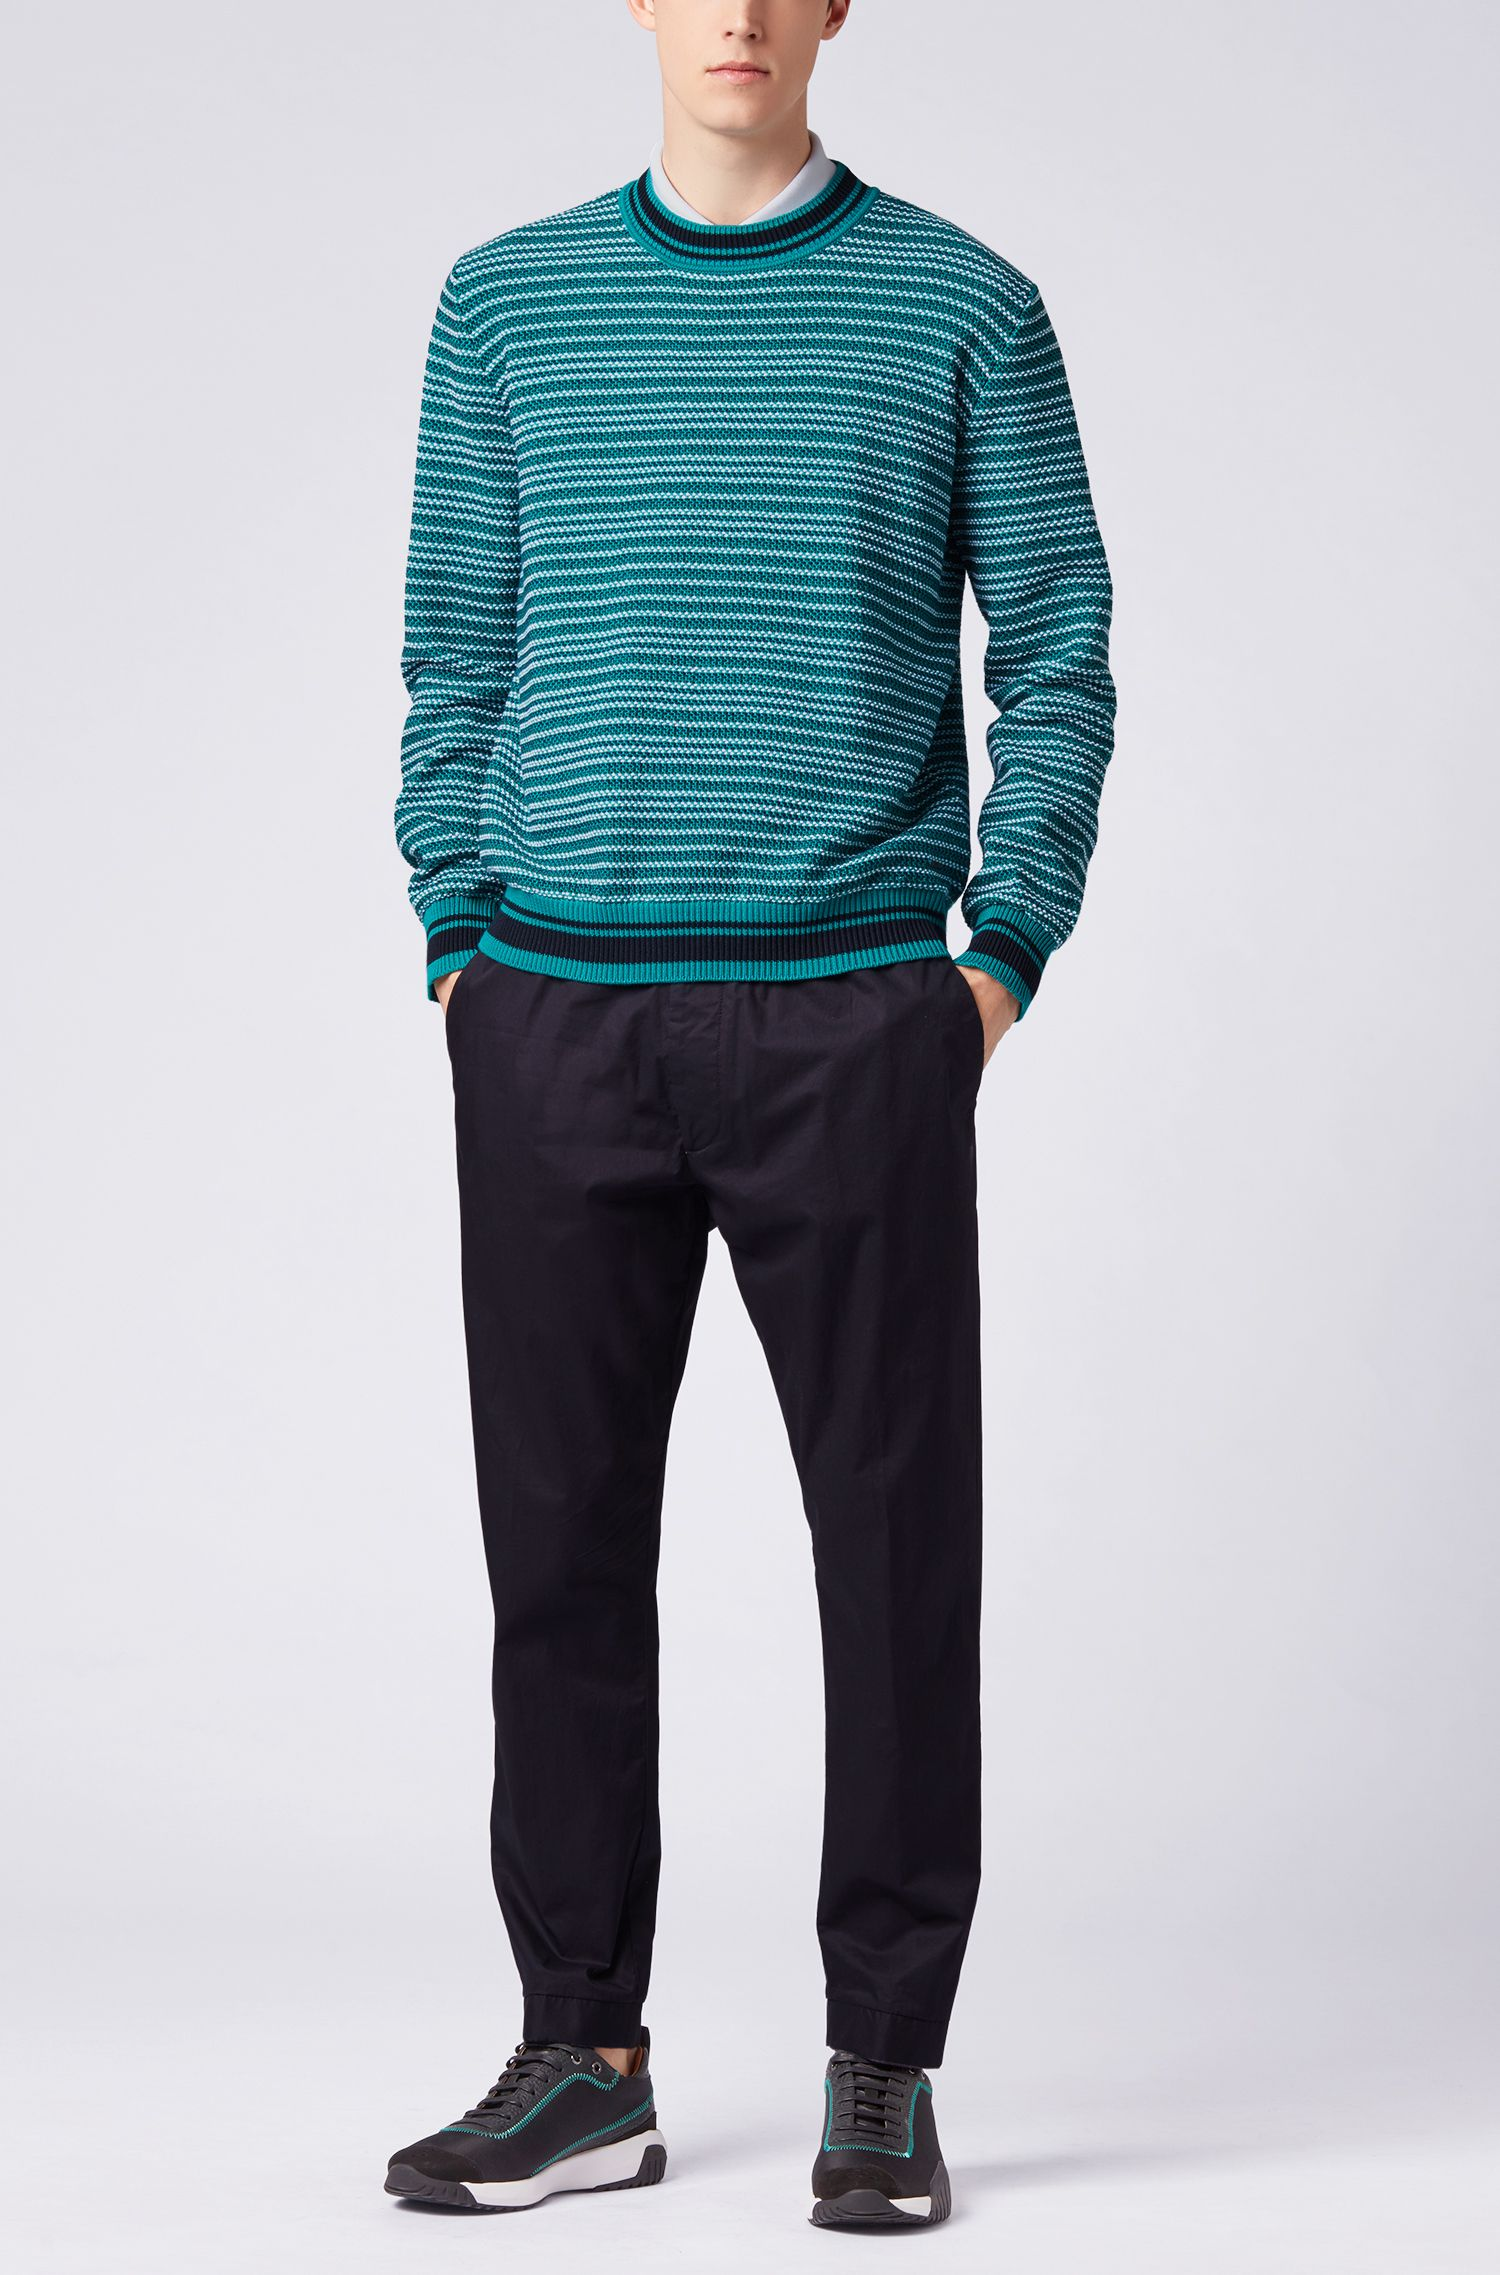 Multi-textured striped sweater in cotton jacquard